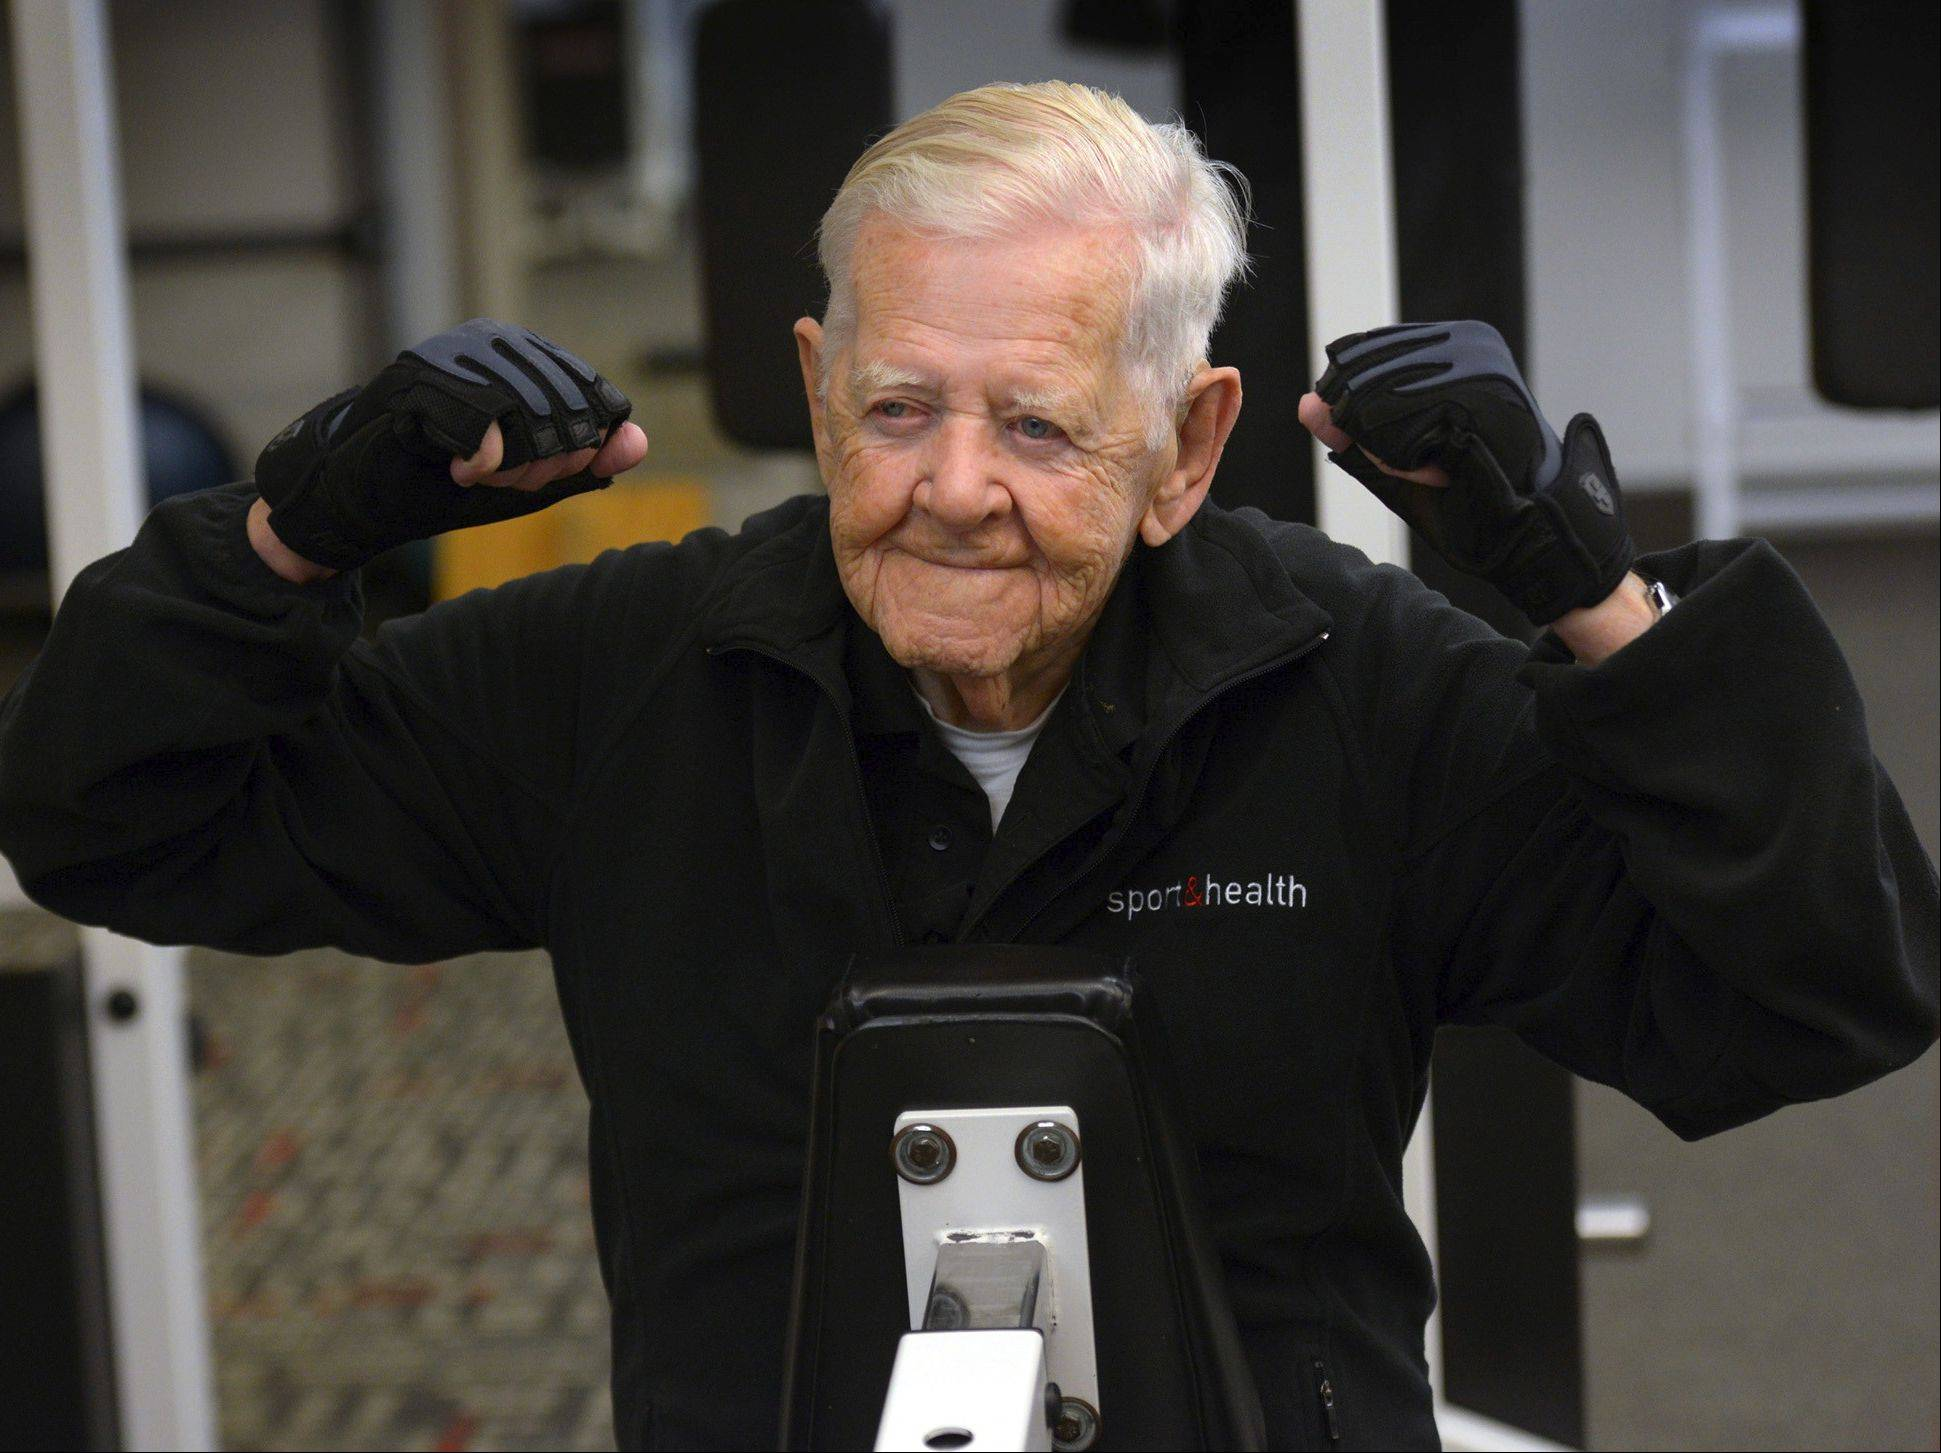 Ray Clark celebrates completion of his weekly workout. At 102, Clark is living proof that it's never too late to get fit.